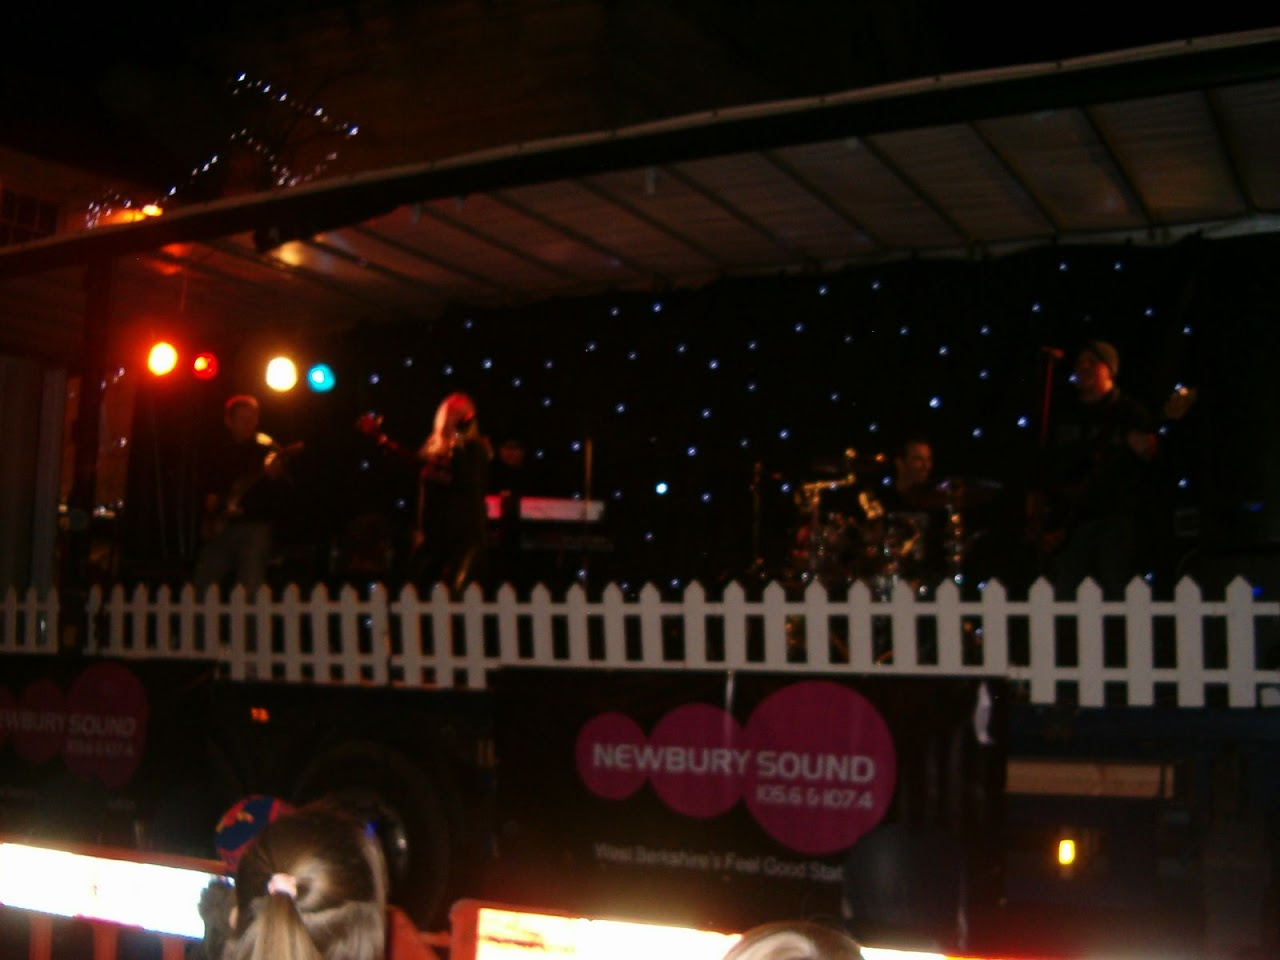 Newbury Christmas Lights 2009 - HPIM0764.JPG